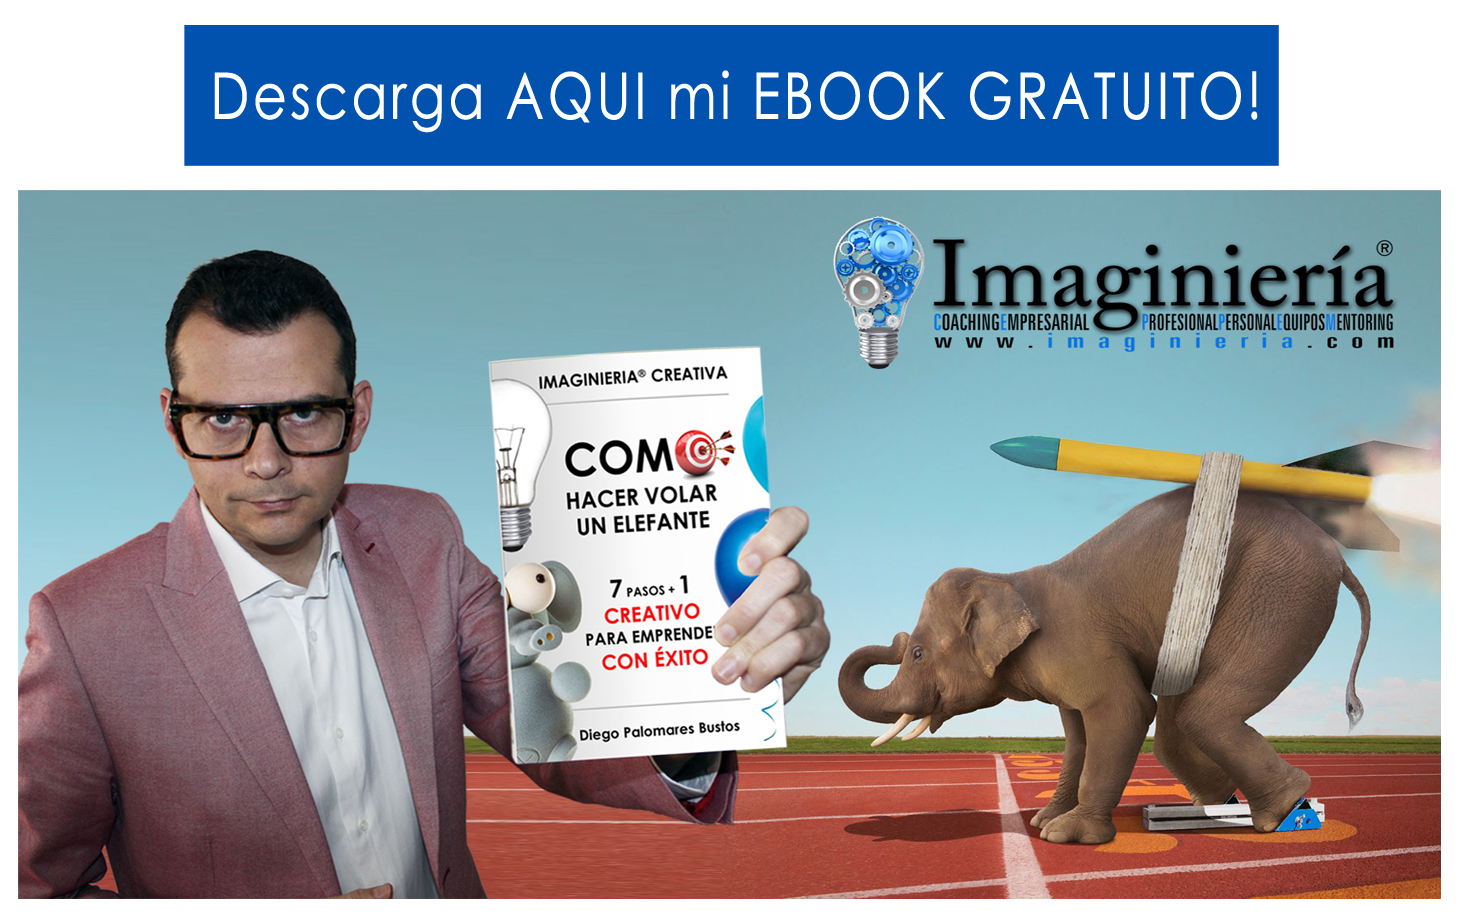 DESCARGA MI EBOOK